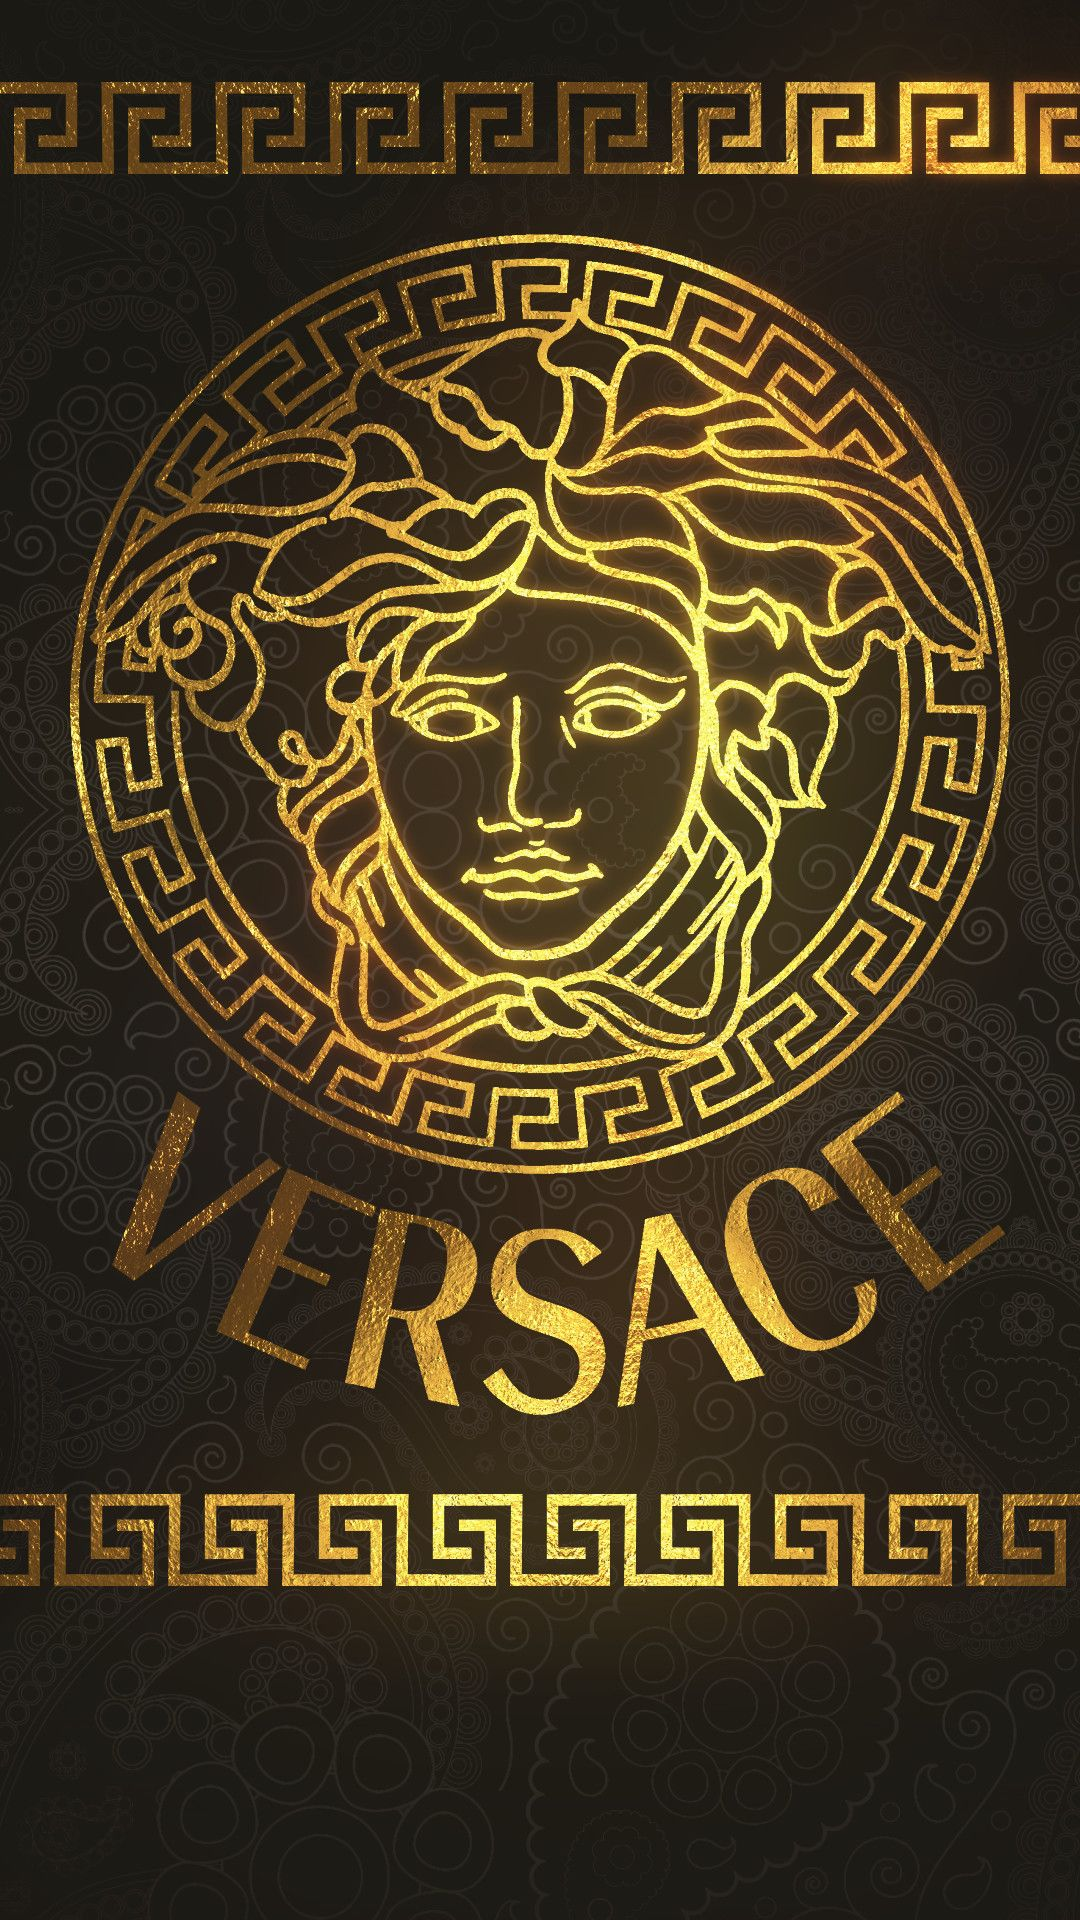 70 Versace Iphone Wallpapers On Wallpaperplay Swag Wallpaper